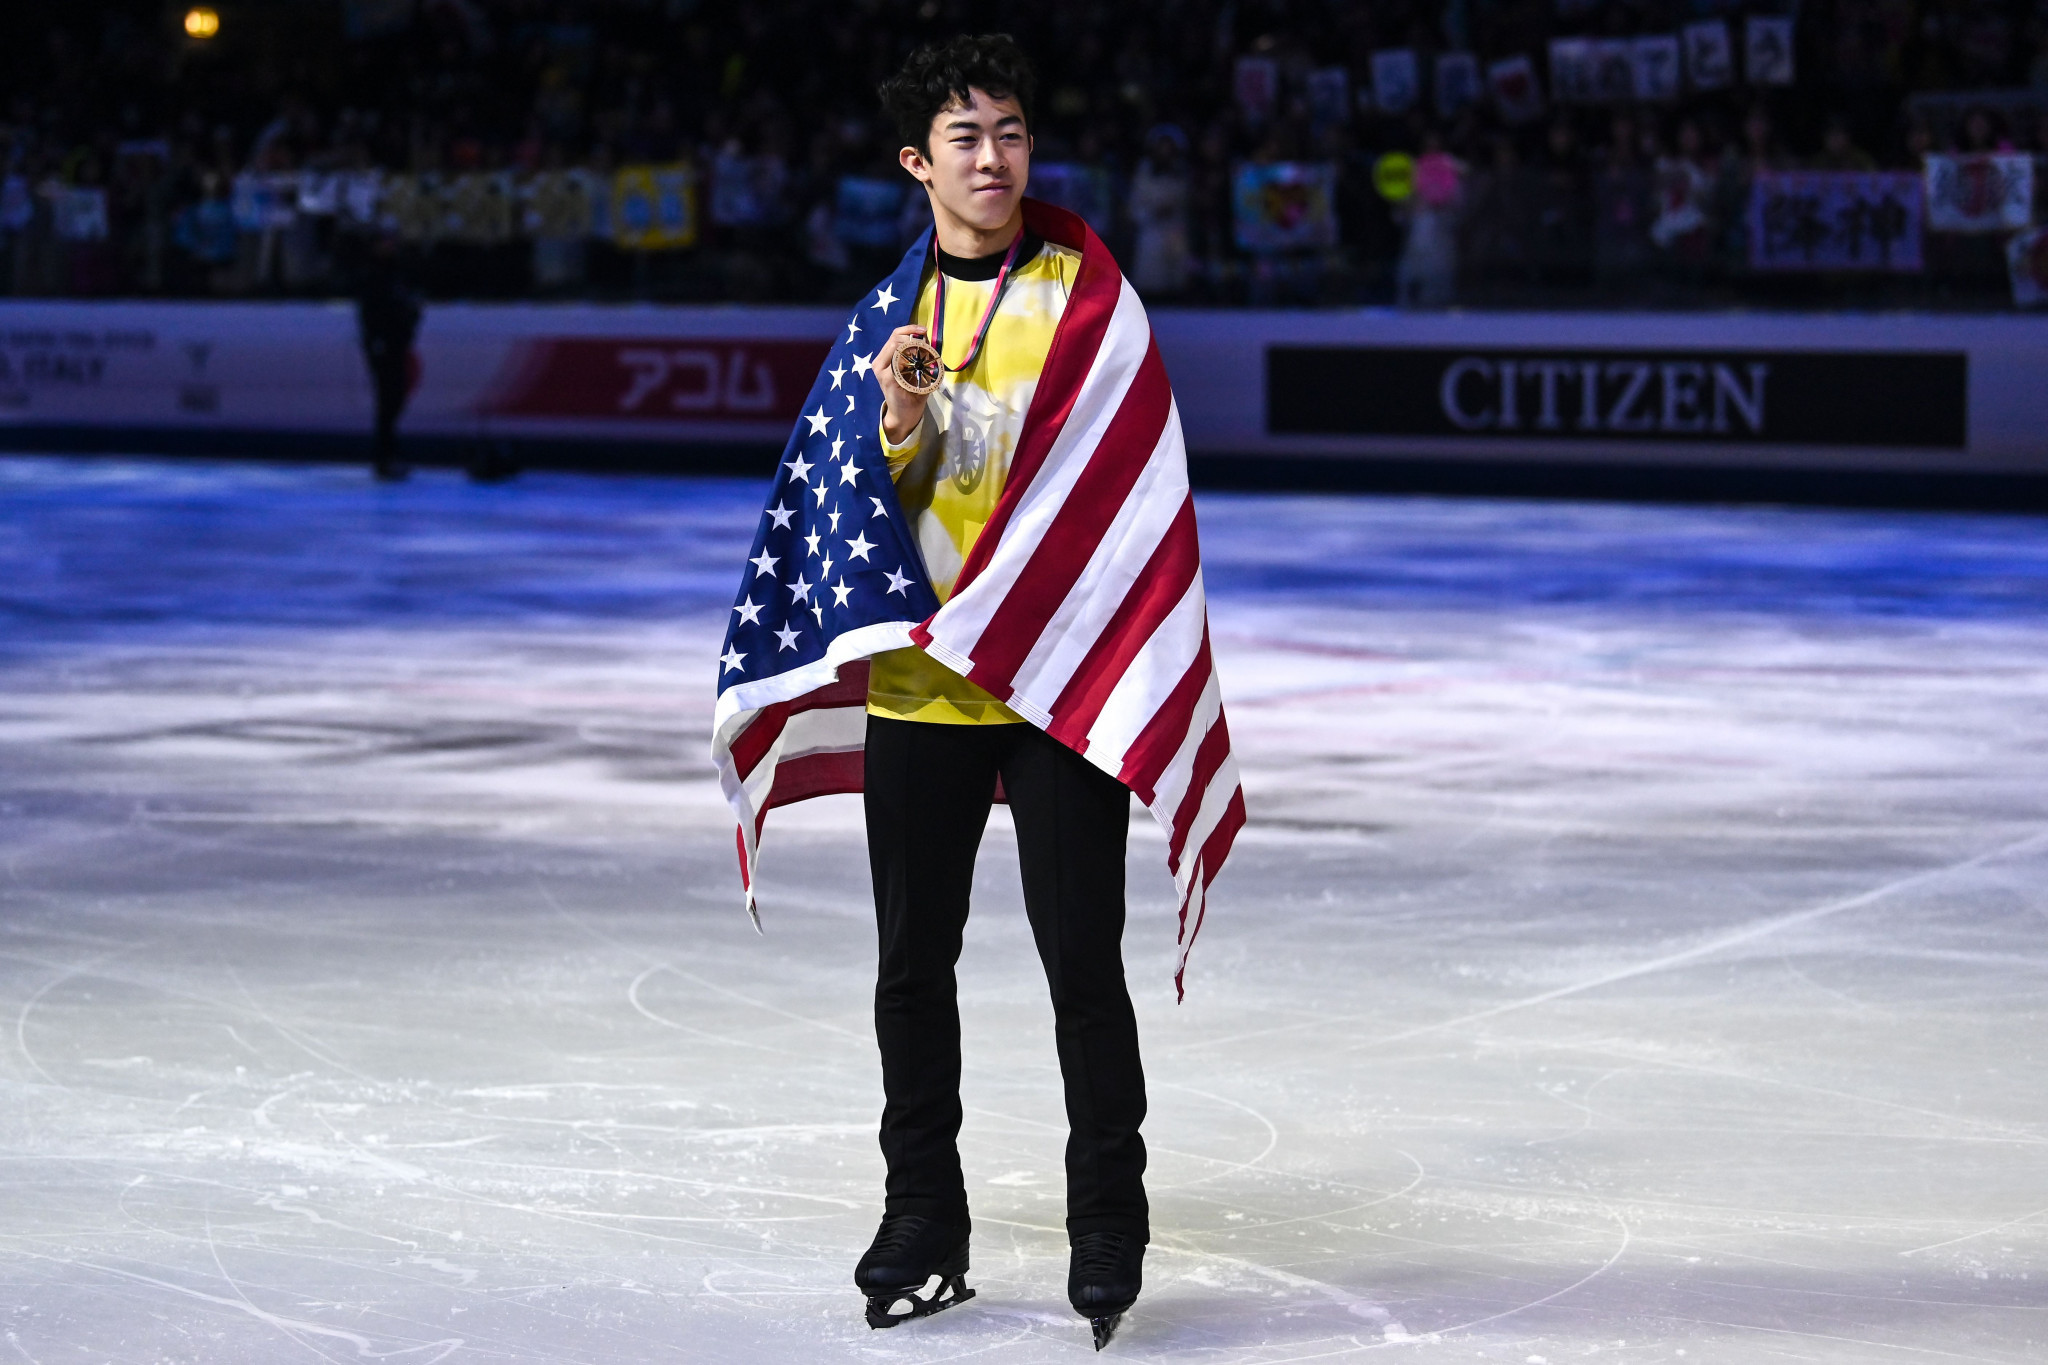 Nathan Chen from the United States set a world record to claim victory at the ISU  Grand Prix Final in Turin ©Getty Images